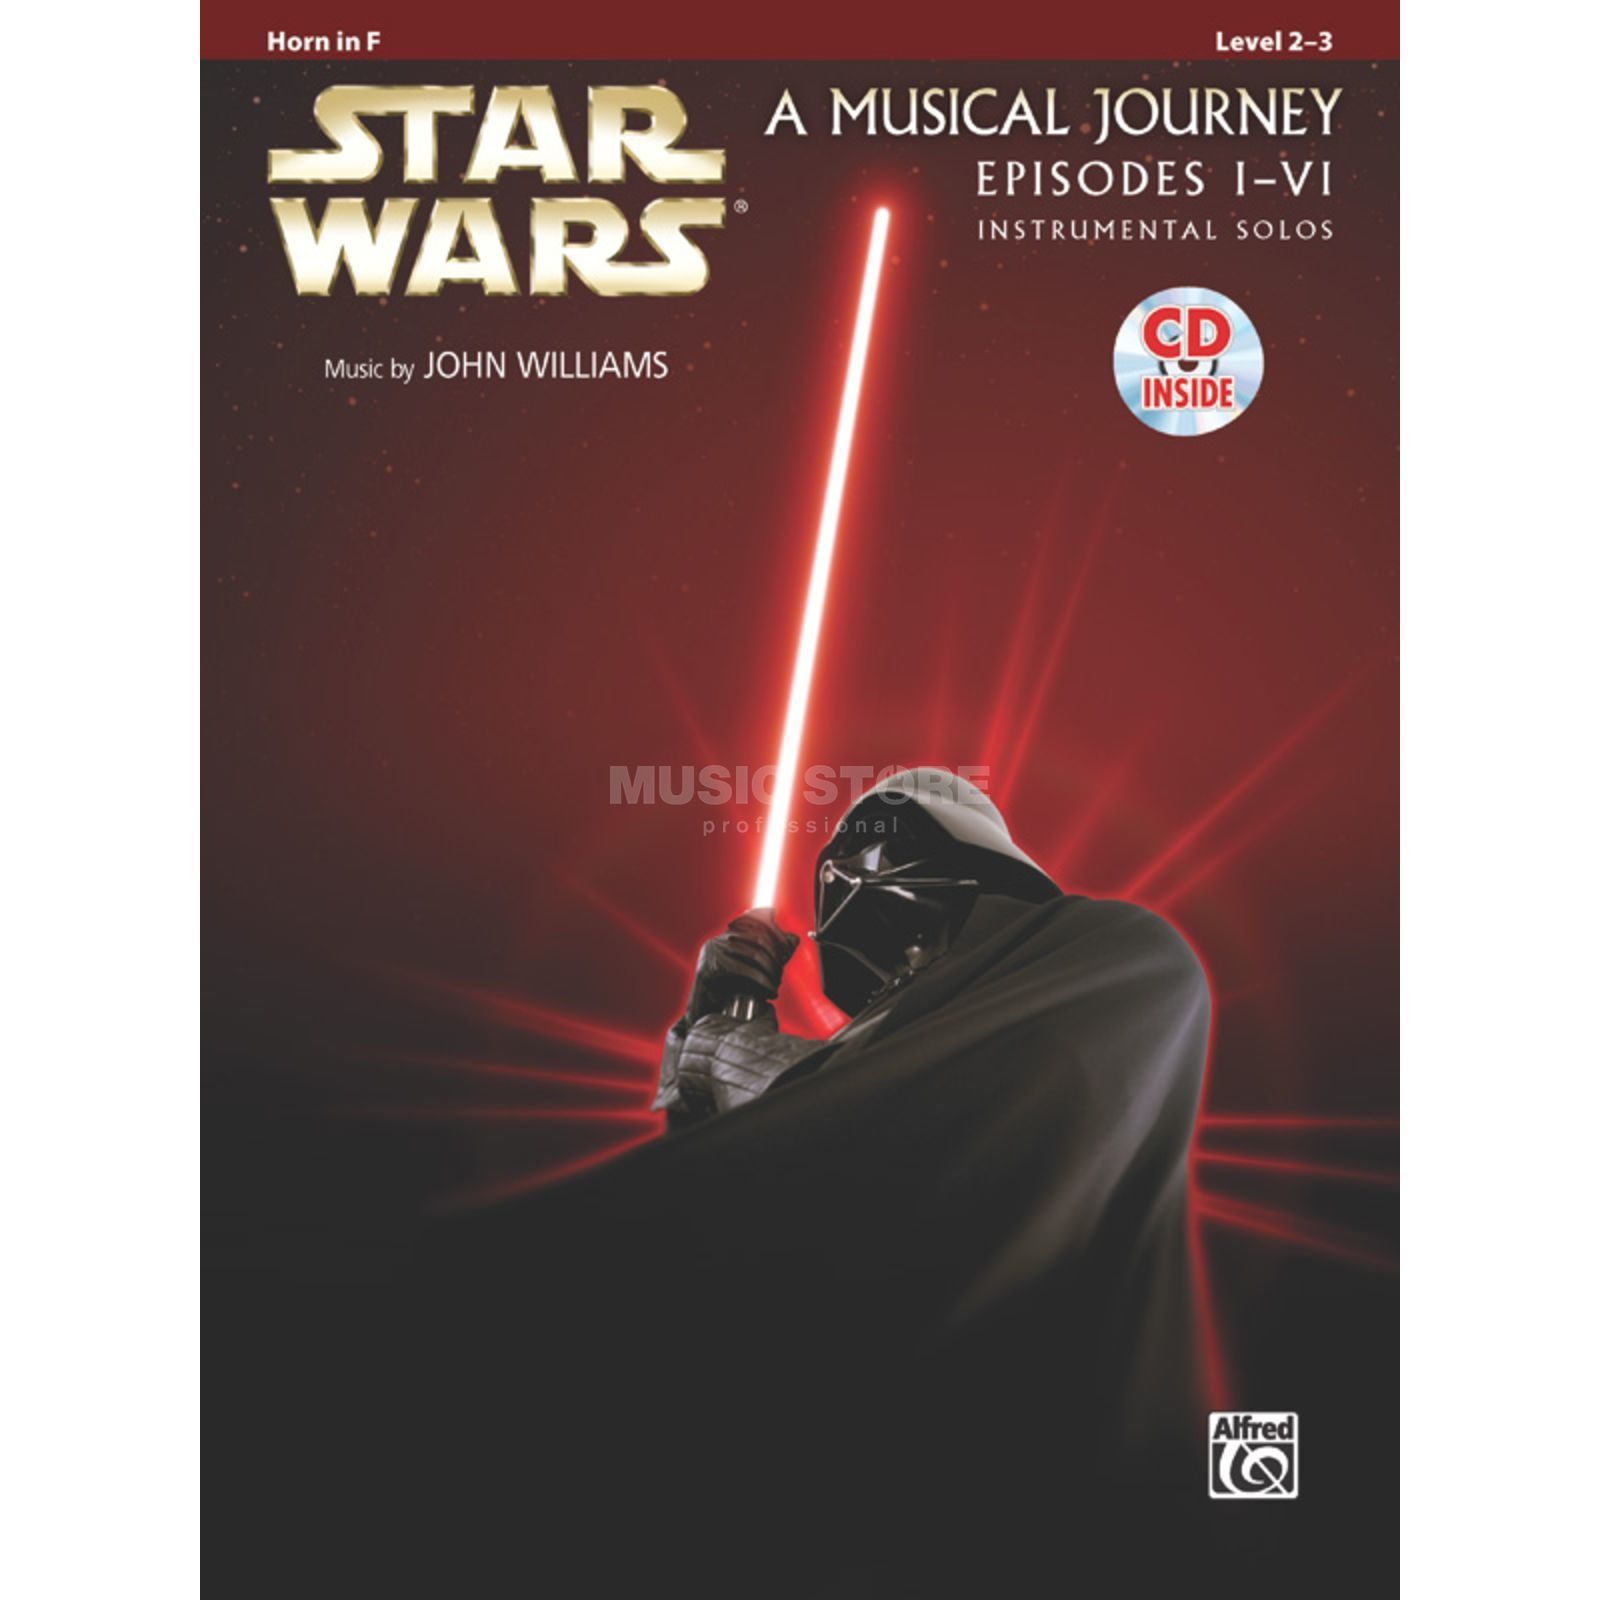 Alfred Music Star Wars 1-6 - Horn in F Instrumental Solos, Book/CD Produktbillede